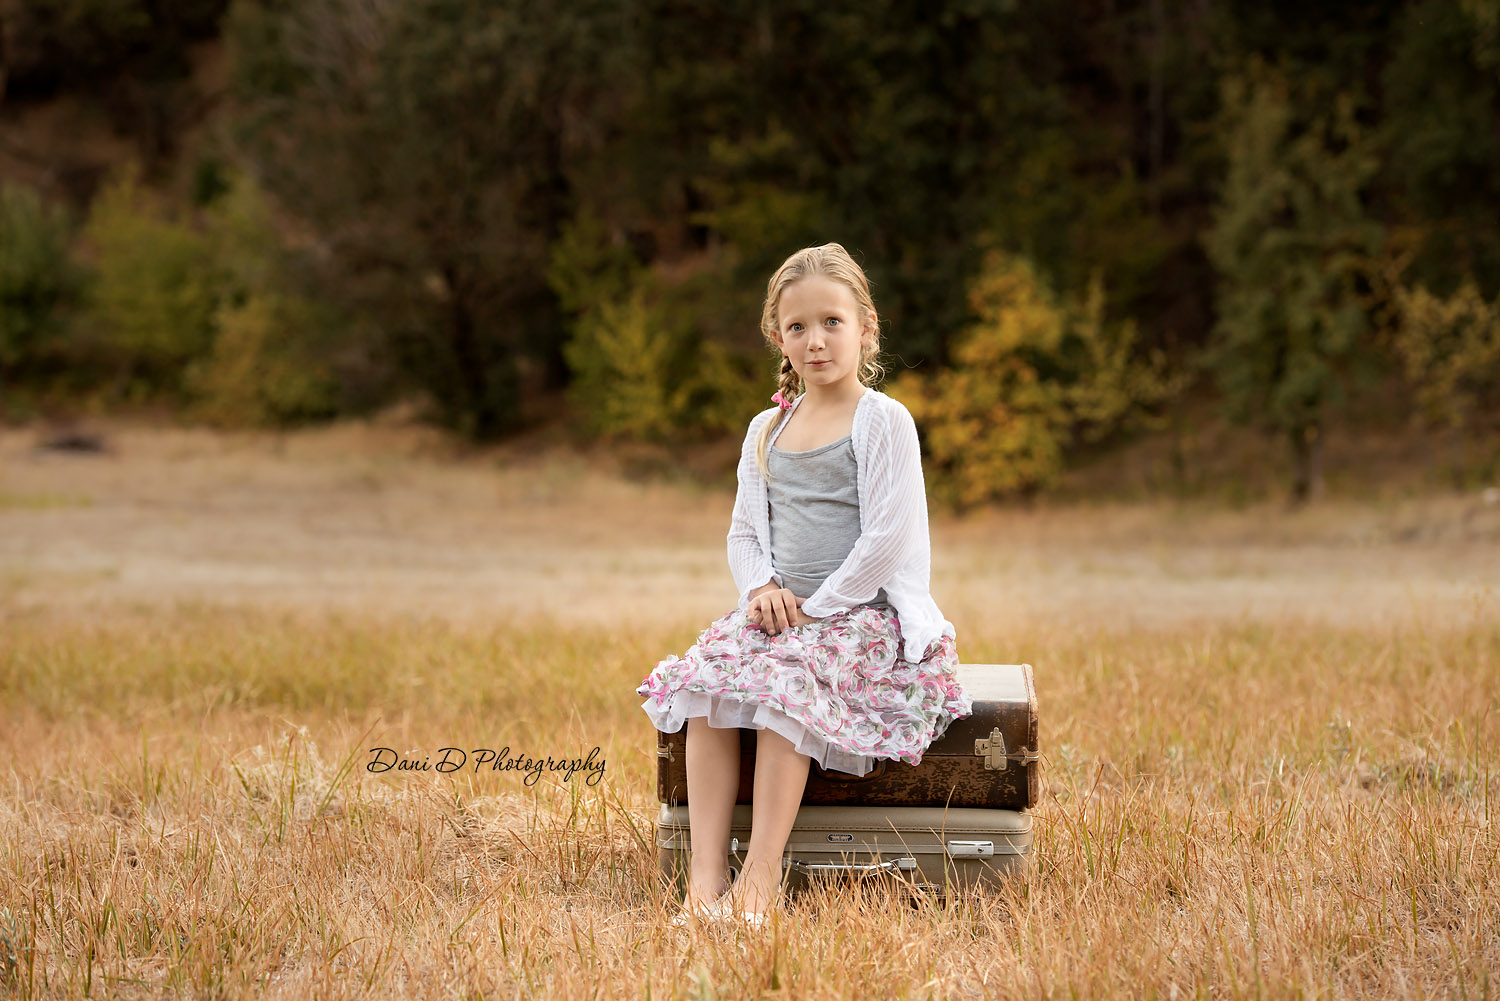 young girl in a field on suitcases - Redding CA photographer - Dani D Photography